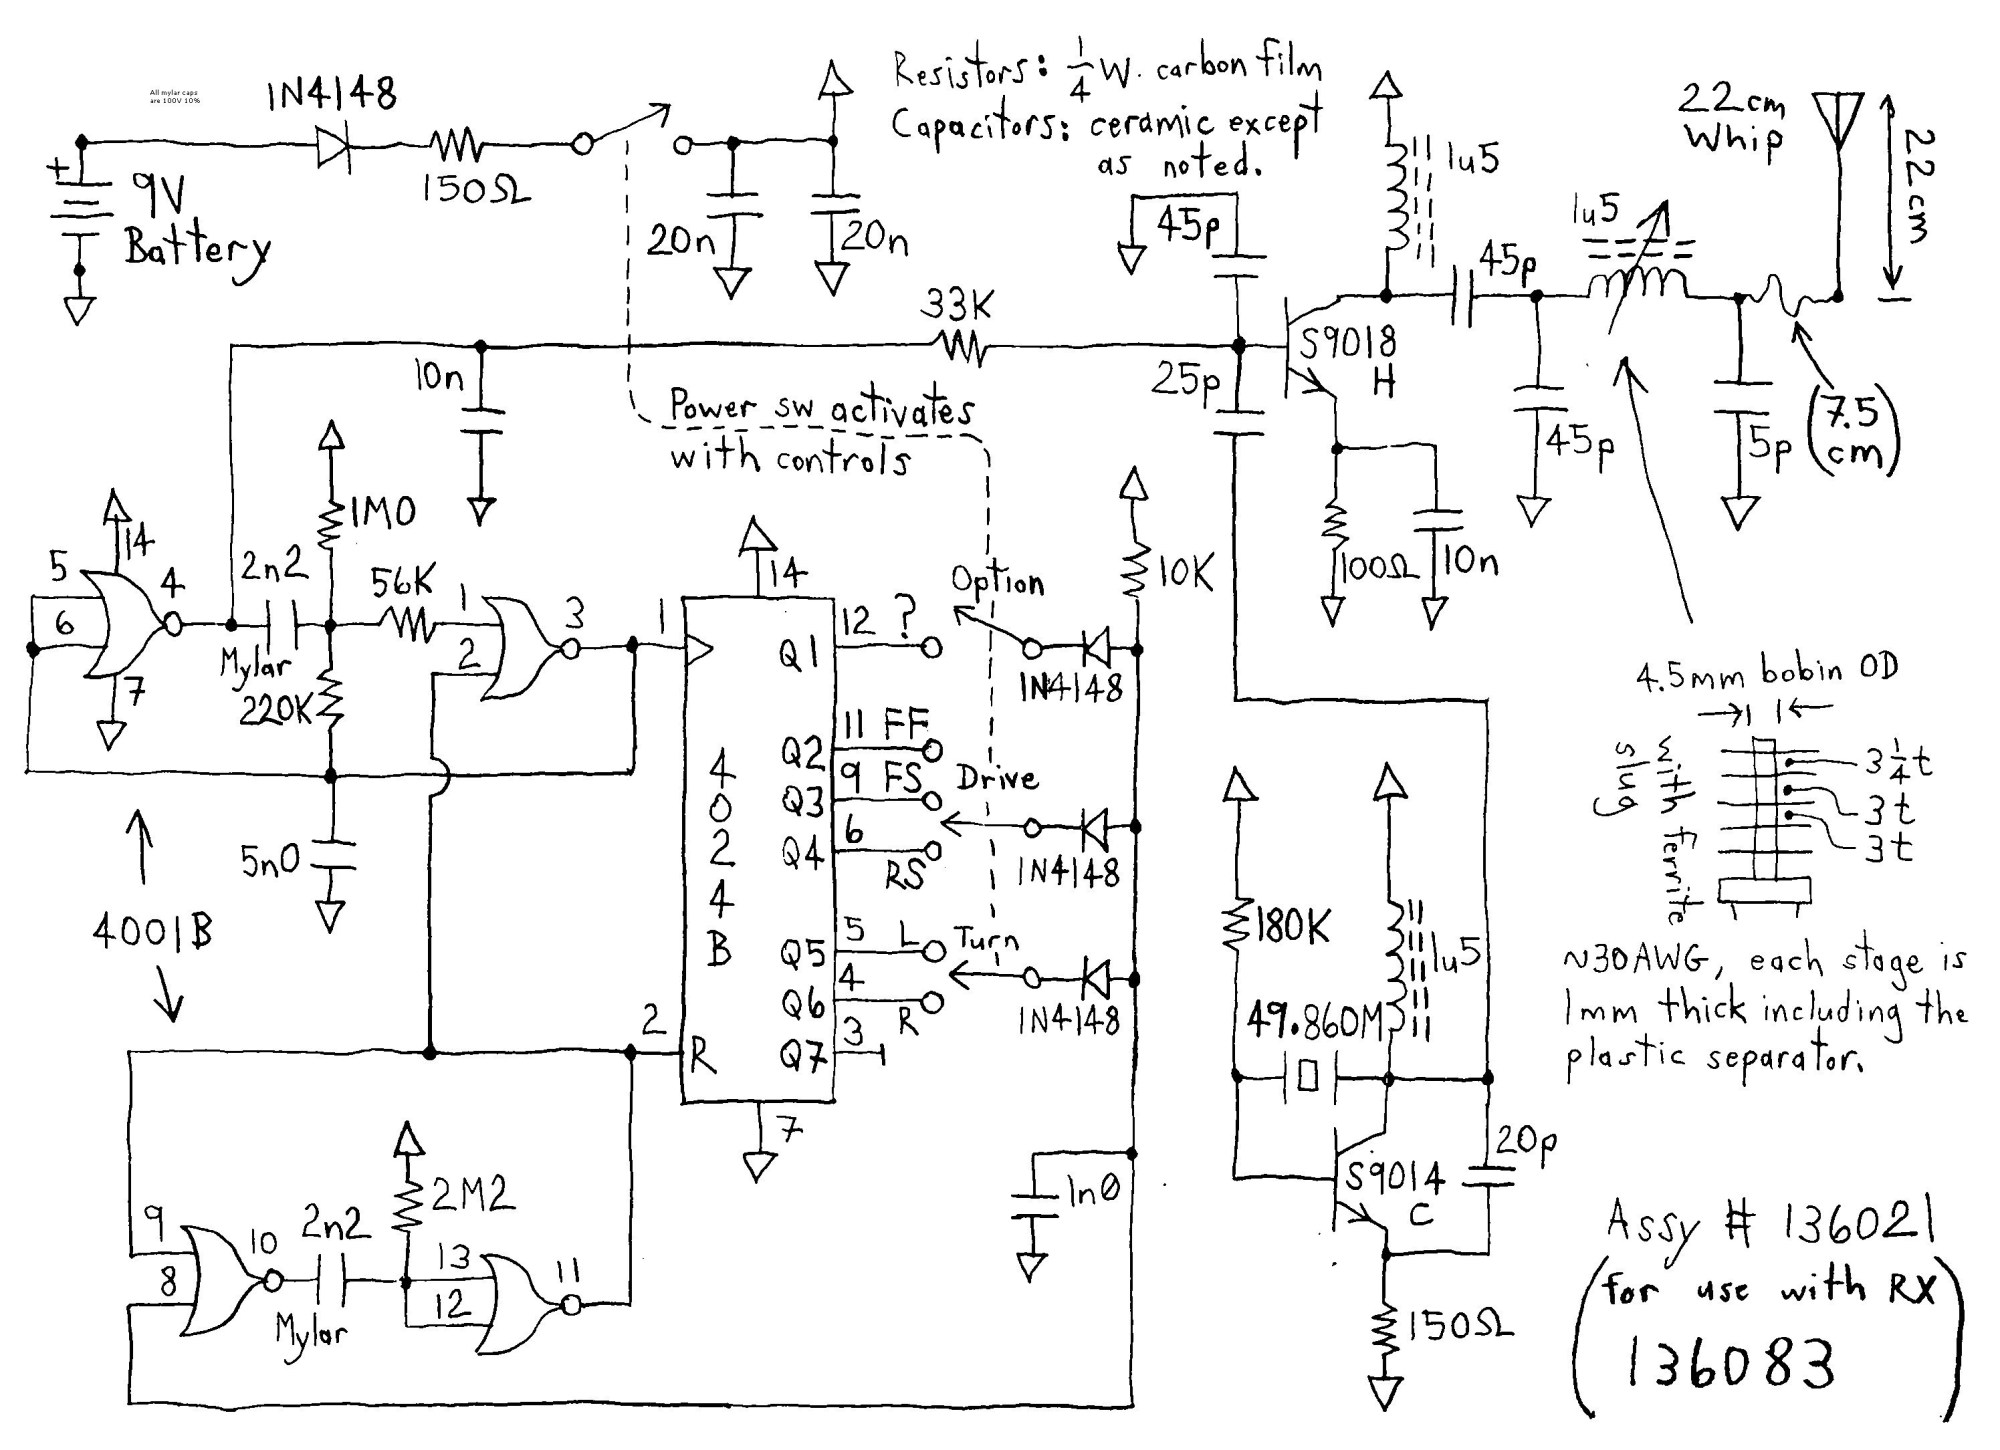 hight resolution of electrical wiring diagram symbols read wiring diagram symbols new best house electrical symbols data